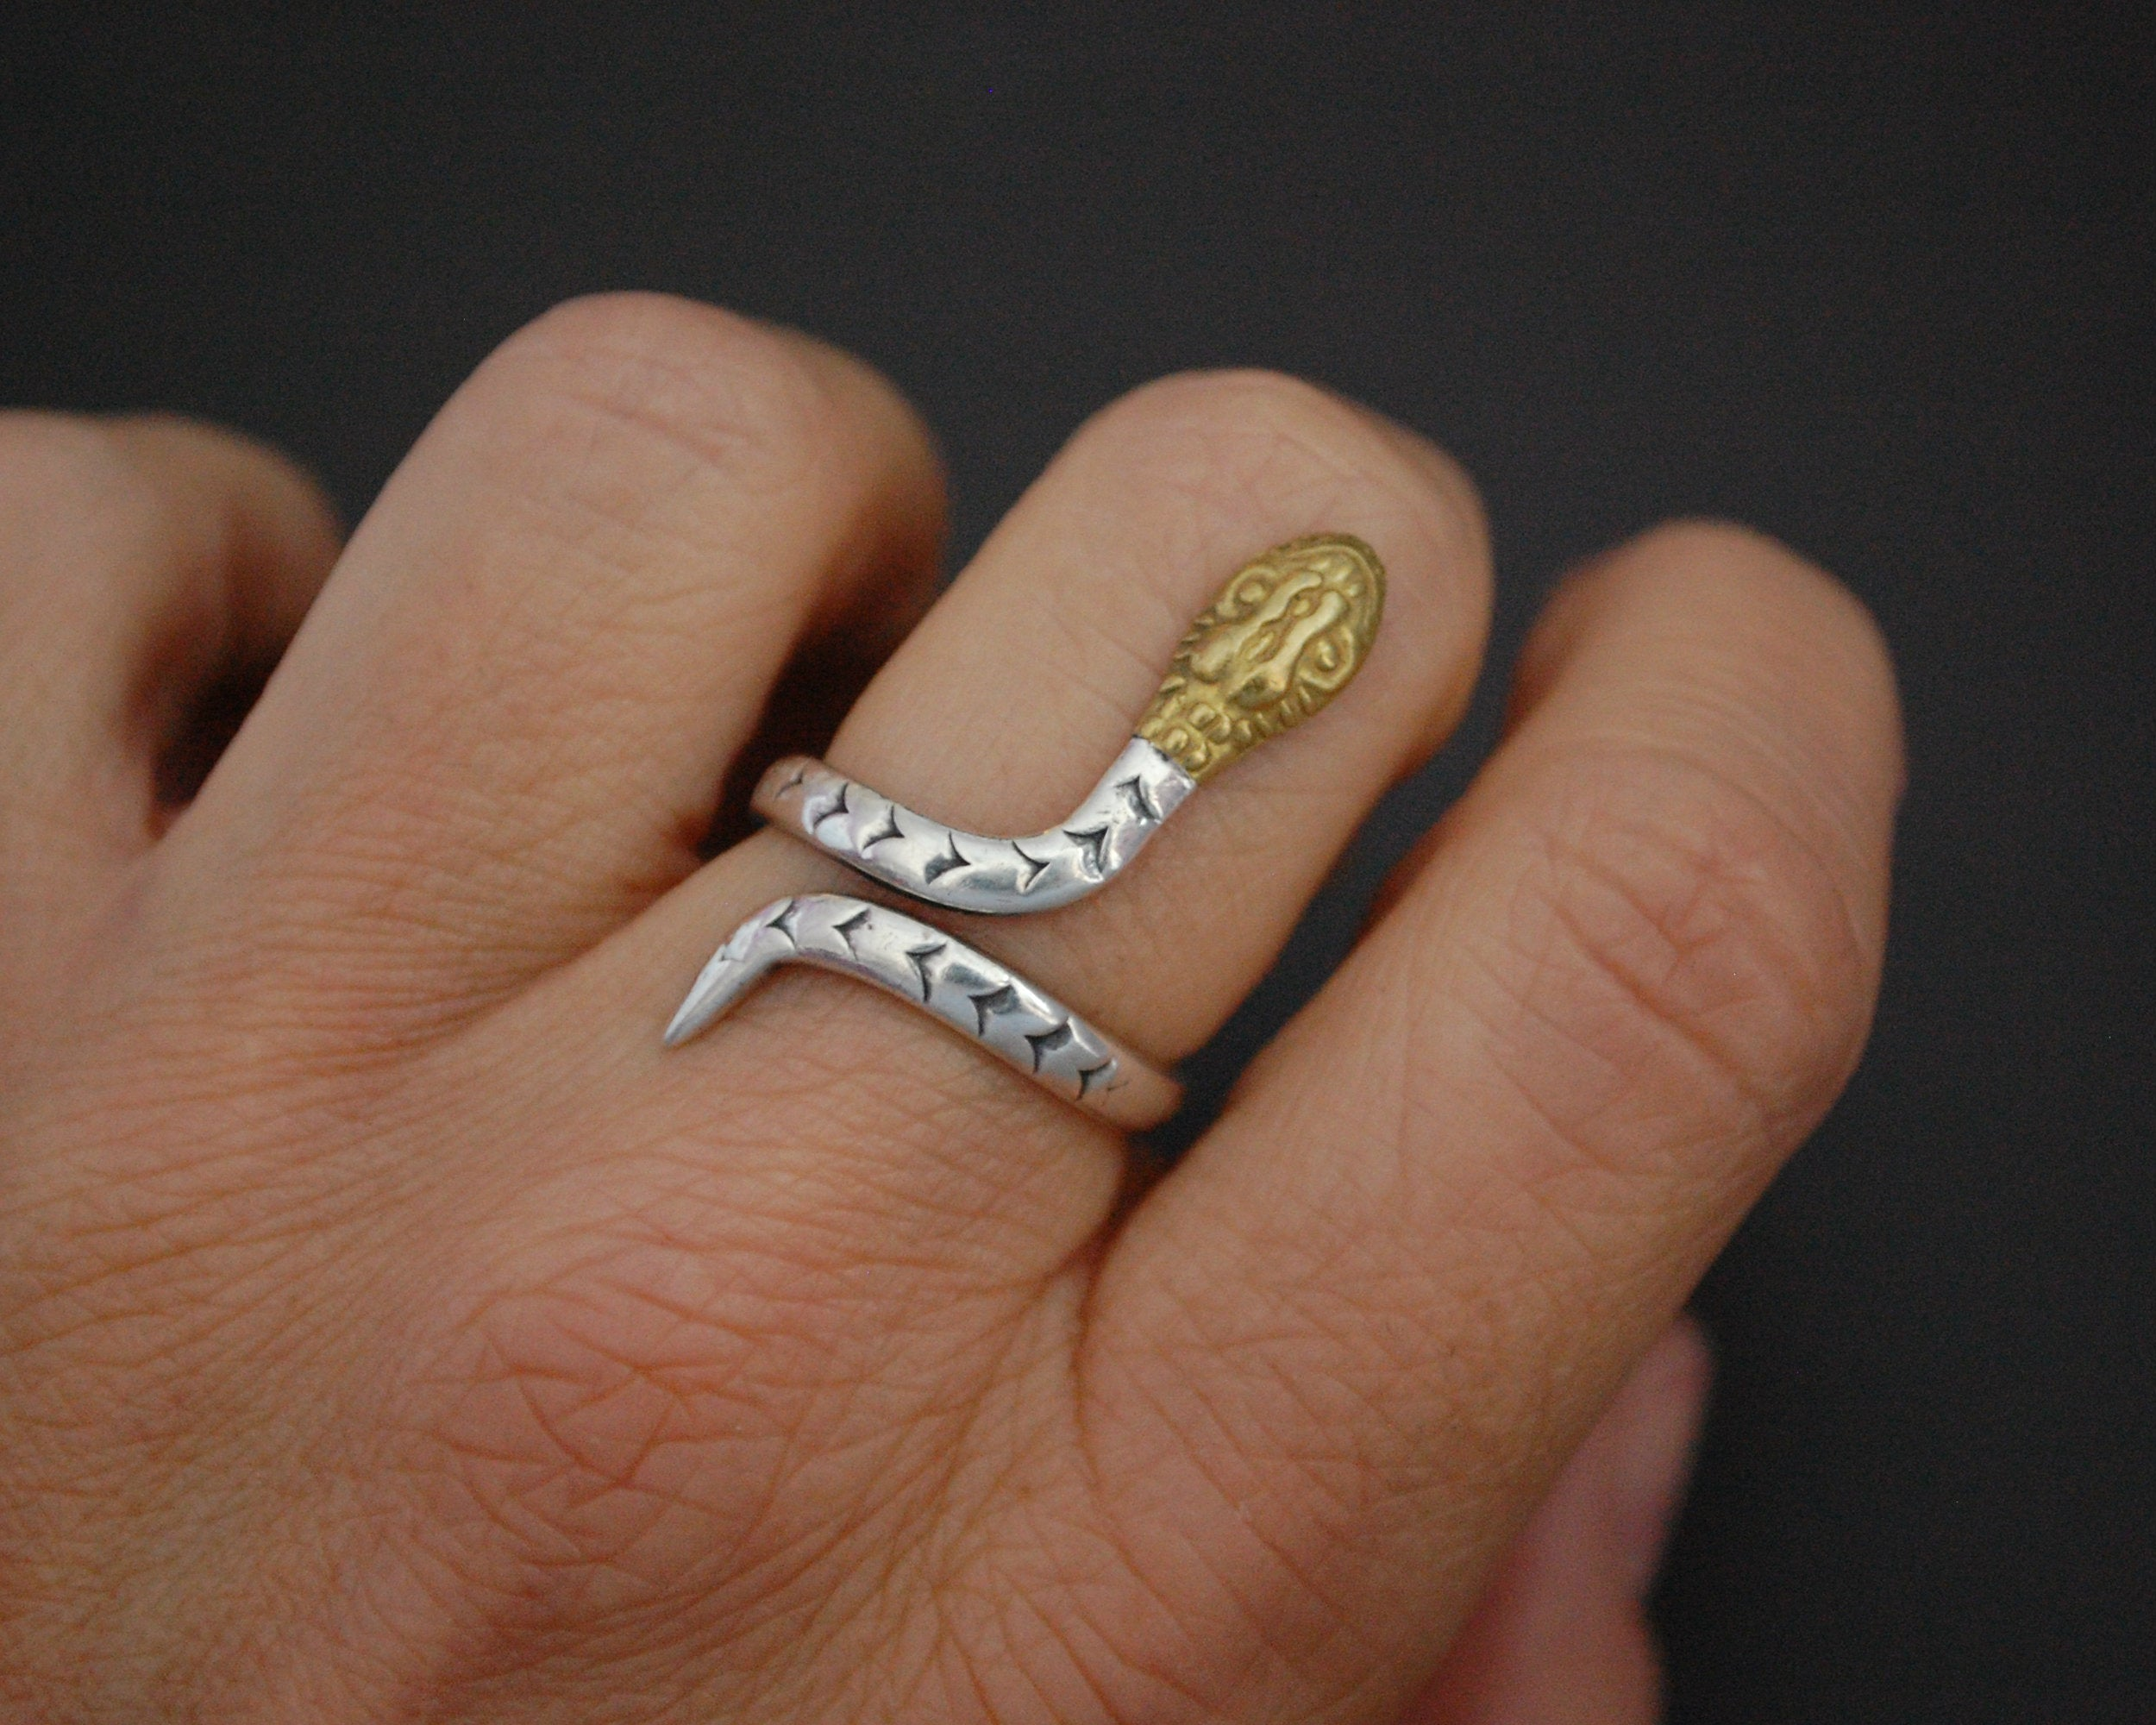 Mexican Snake Ring with Brass Head - Size 6